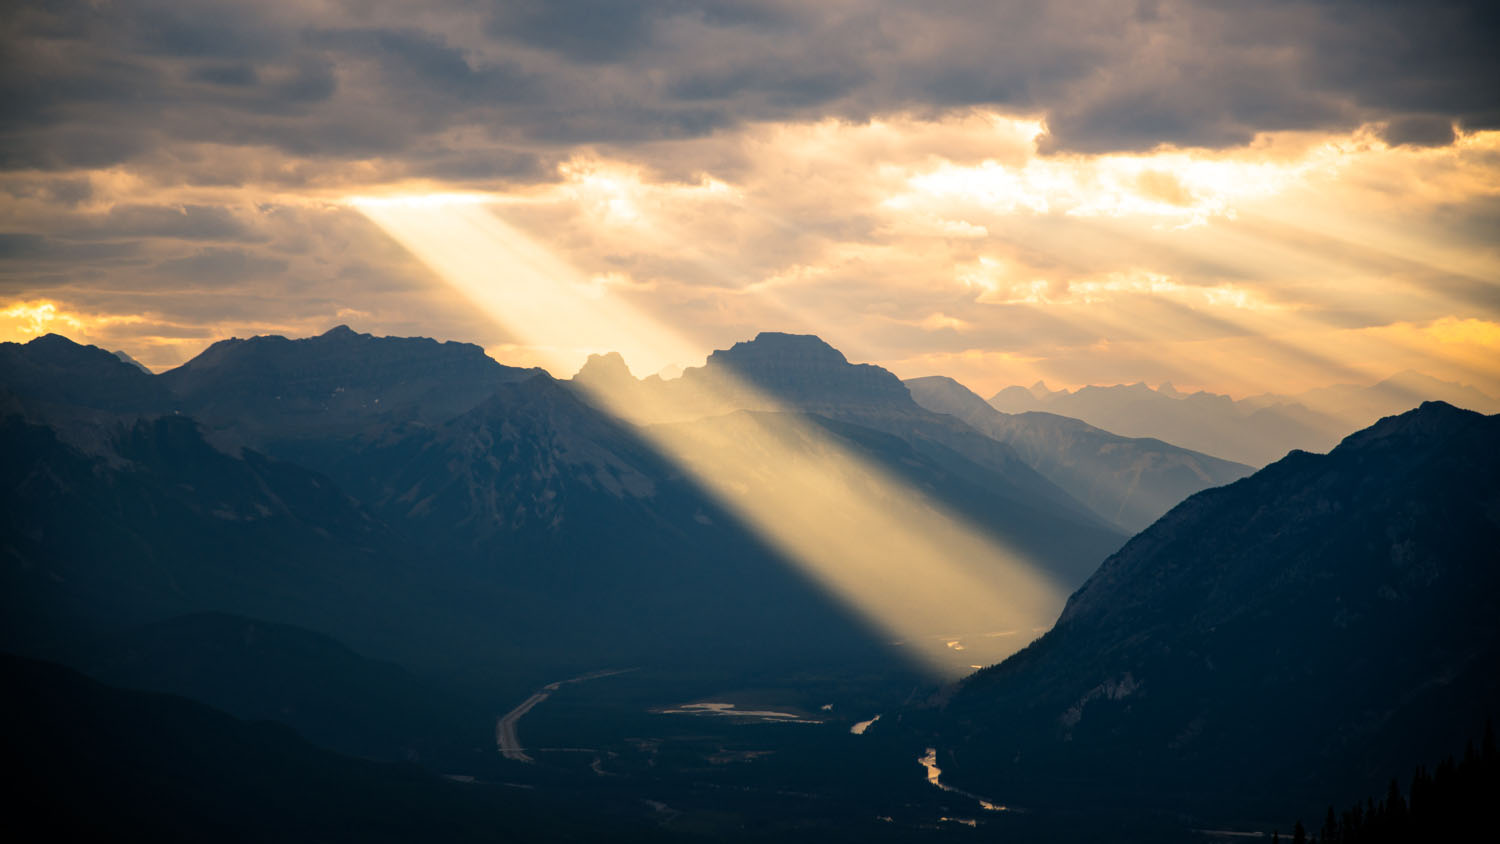 God's Light at the Sundance Peak